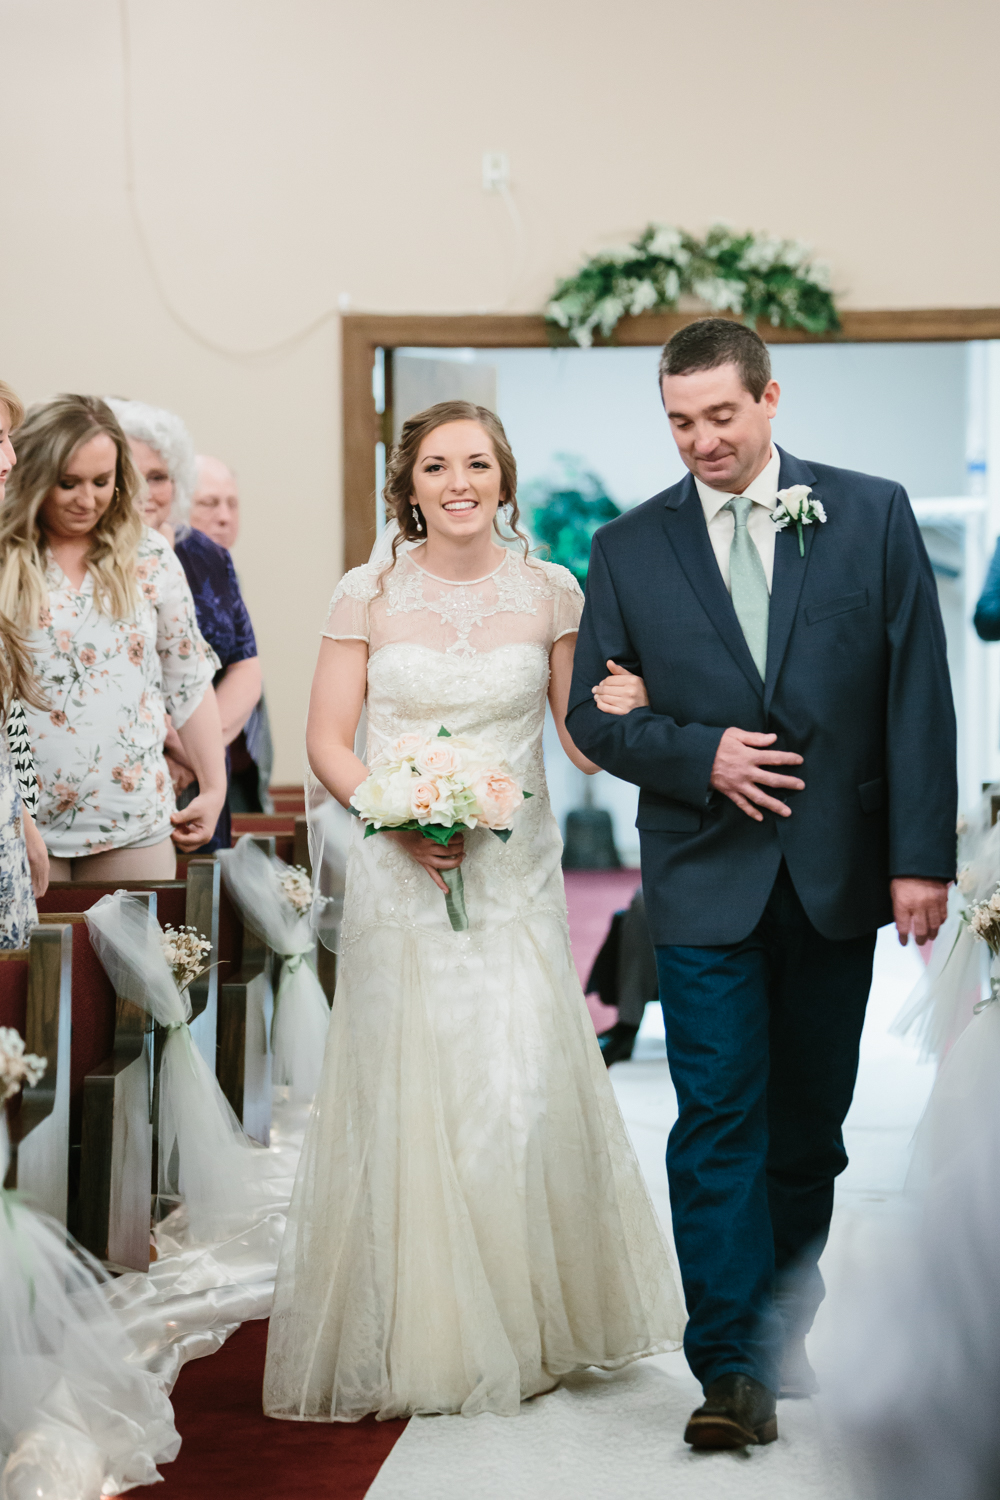 Fun, Happy Spring Wedding by Corrie Mick Photography-144.jpg